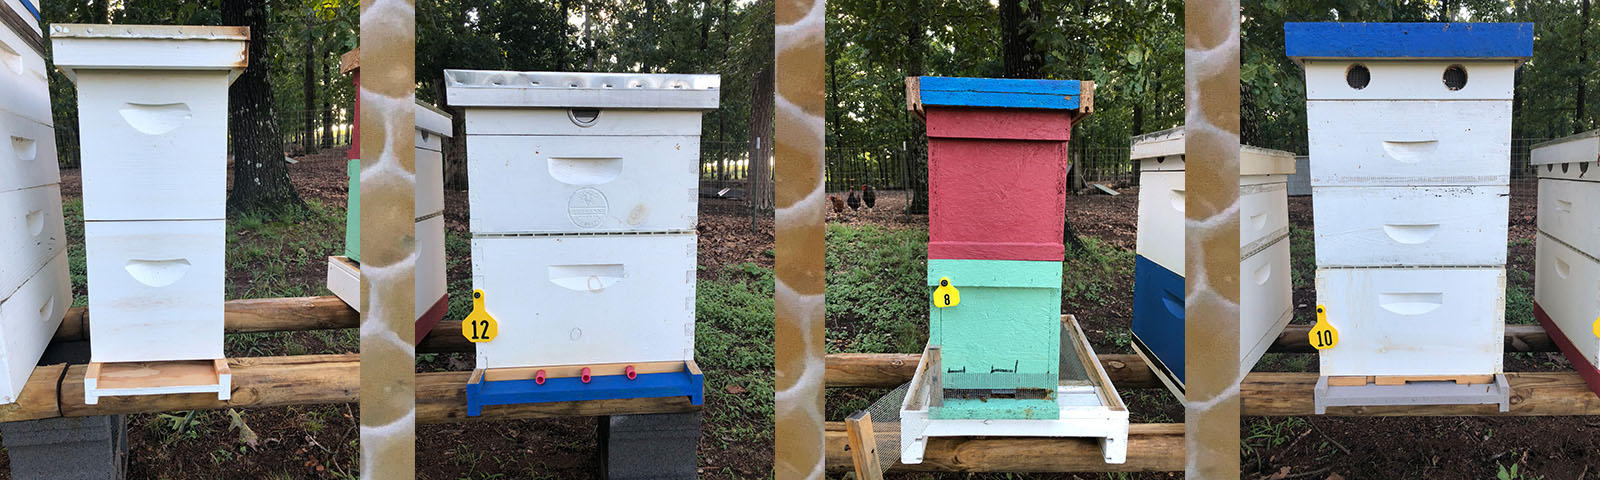 * * * * * * * * Beehive Rental available in 2019 * * * * * * *